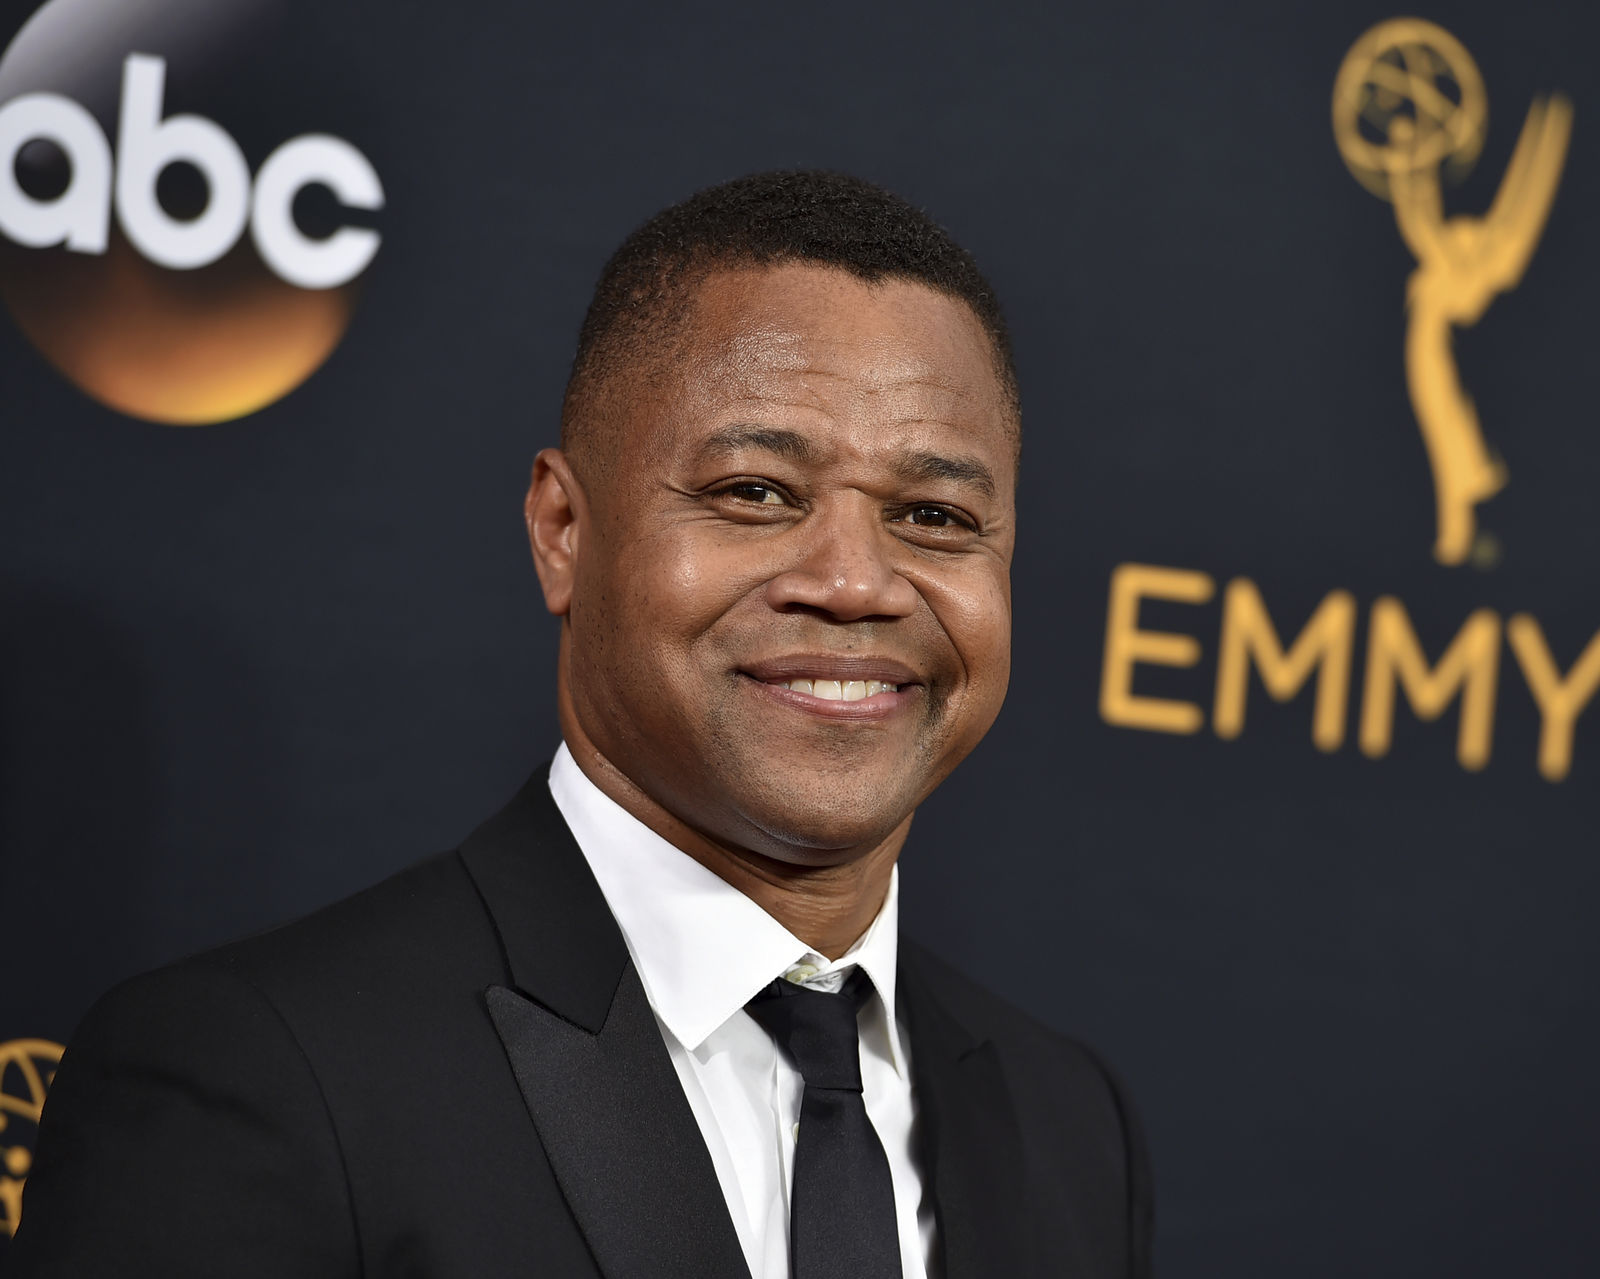 FILE- In this Sept. 18, 2016 file photo, Cuba Gooding Jr. arrives at the 68th Primetime Emmy Awards in Los Angeles. (Photo by Jordan Strauss/Invision/AP, File)